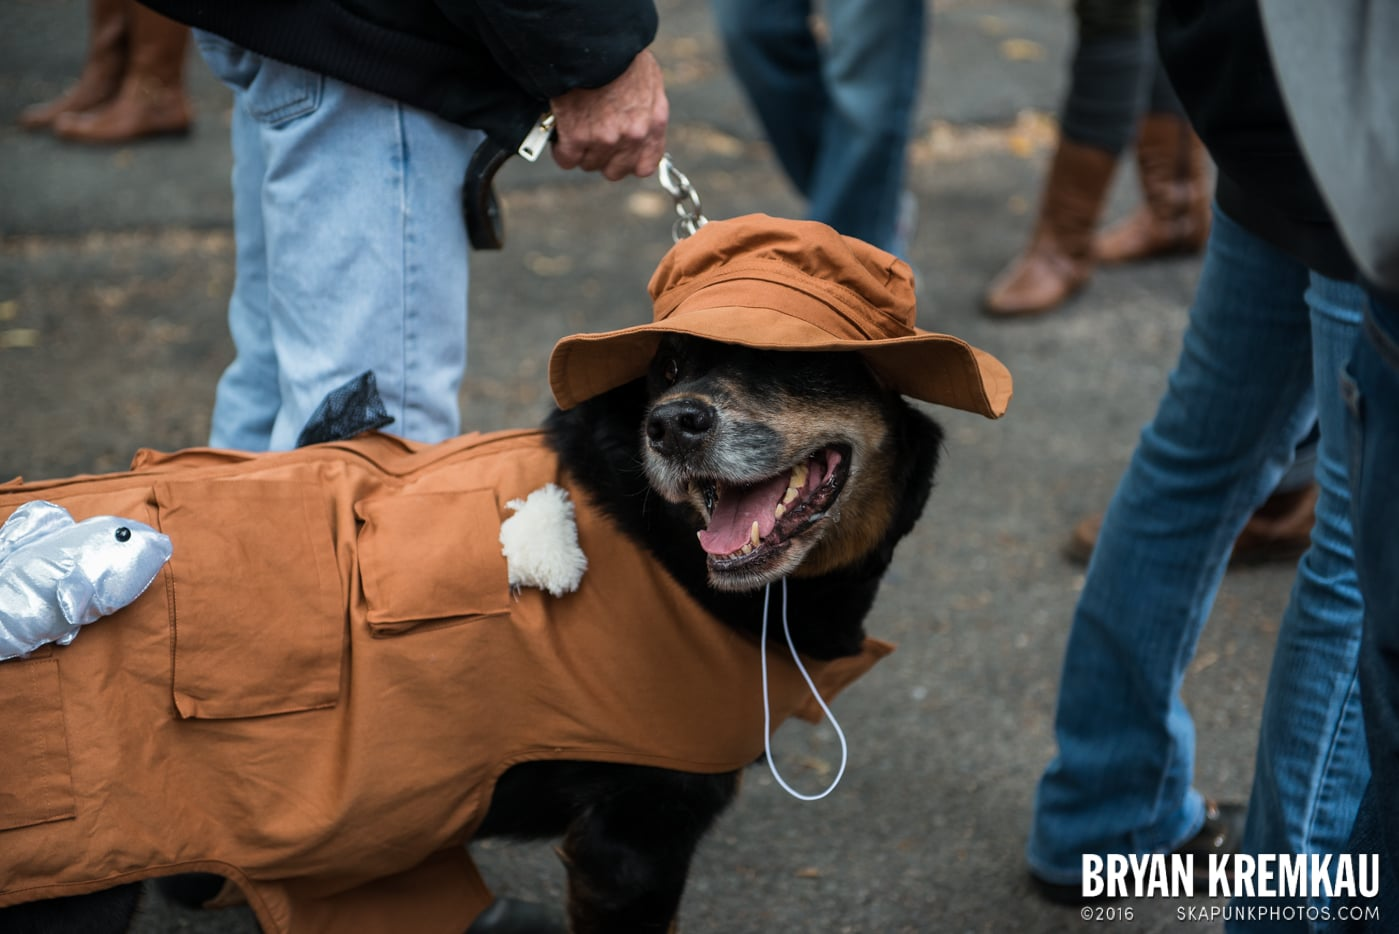 Tompkins Square Halloween Dog Parade 2015 @ Tompkins Square Park, NYC – 10.24.15 (40)